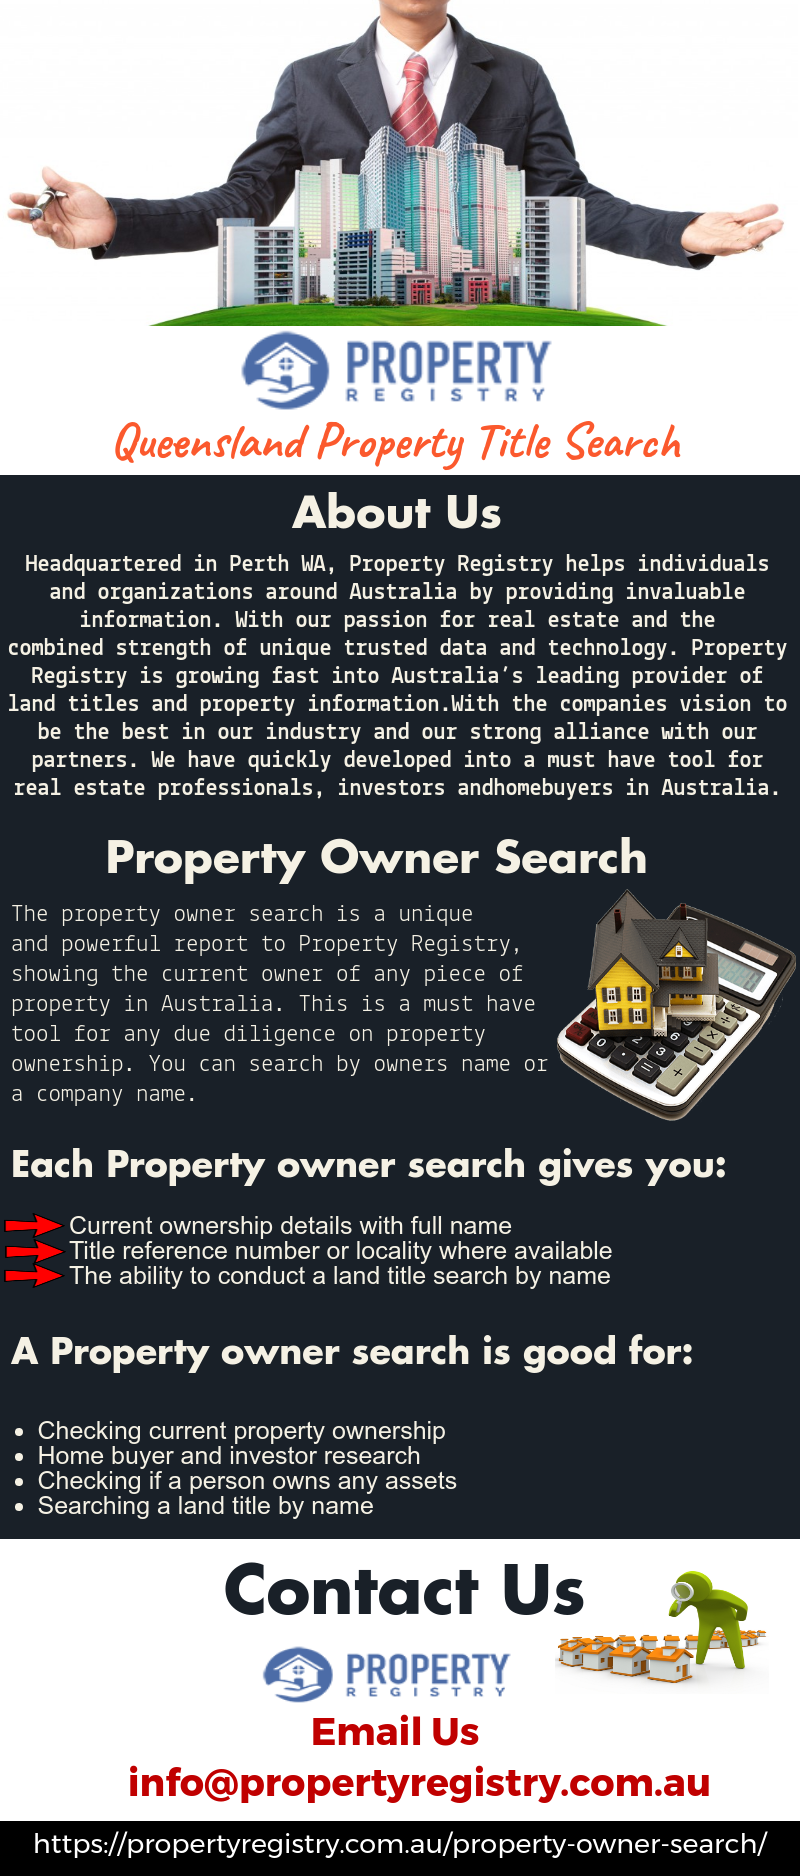 Pin by propertyregistry on Queensland Property Title Search | Must